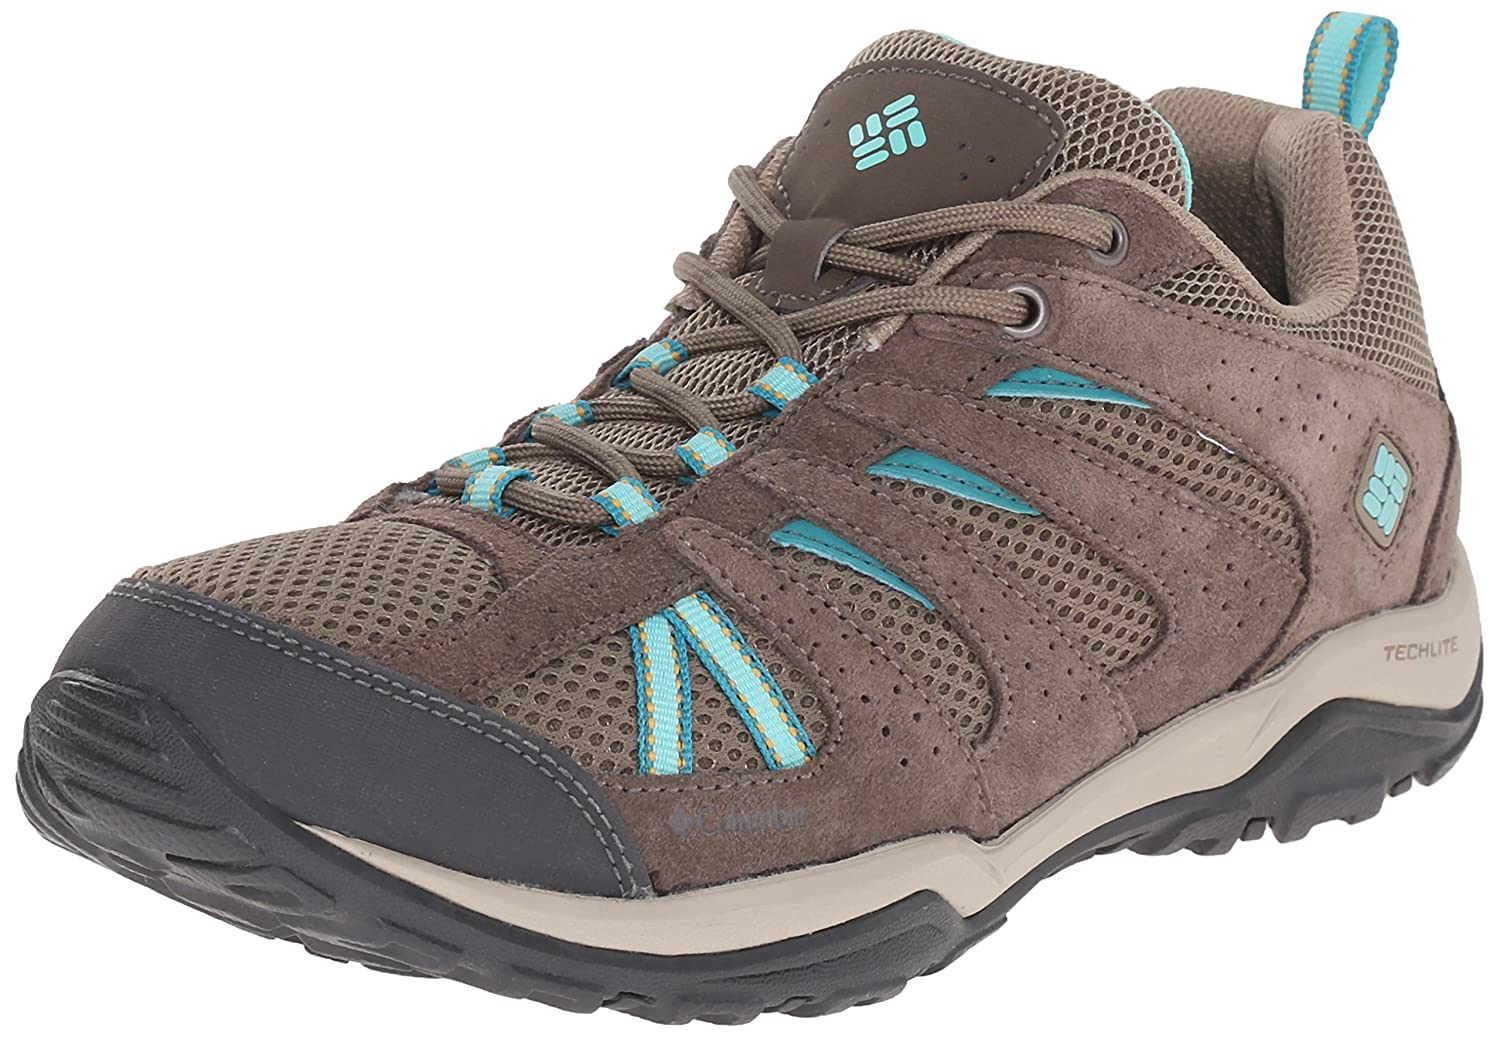 Columbia Women's Dakota Drifter Trail Shoe B01015KS8M 7 M US|Pebble, Dolphin